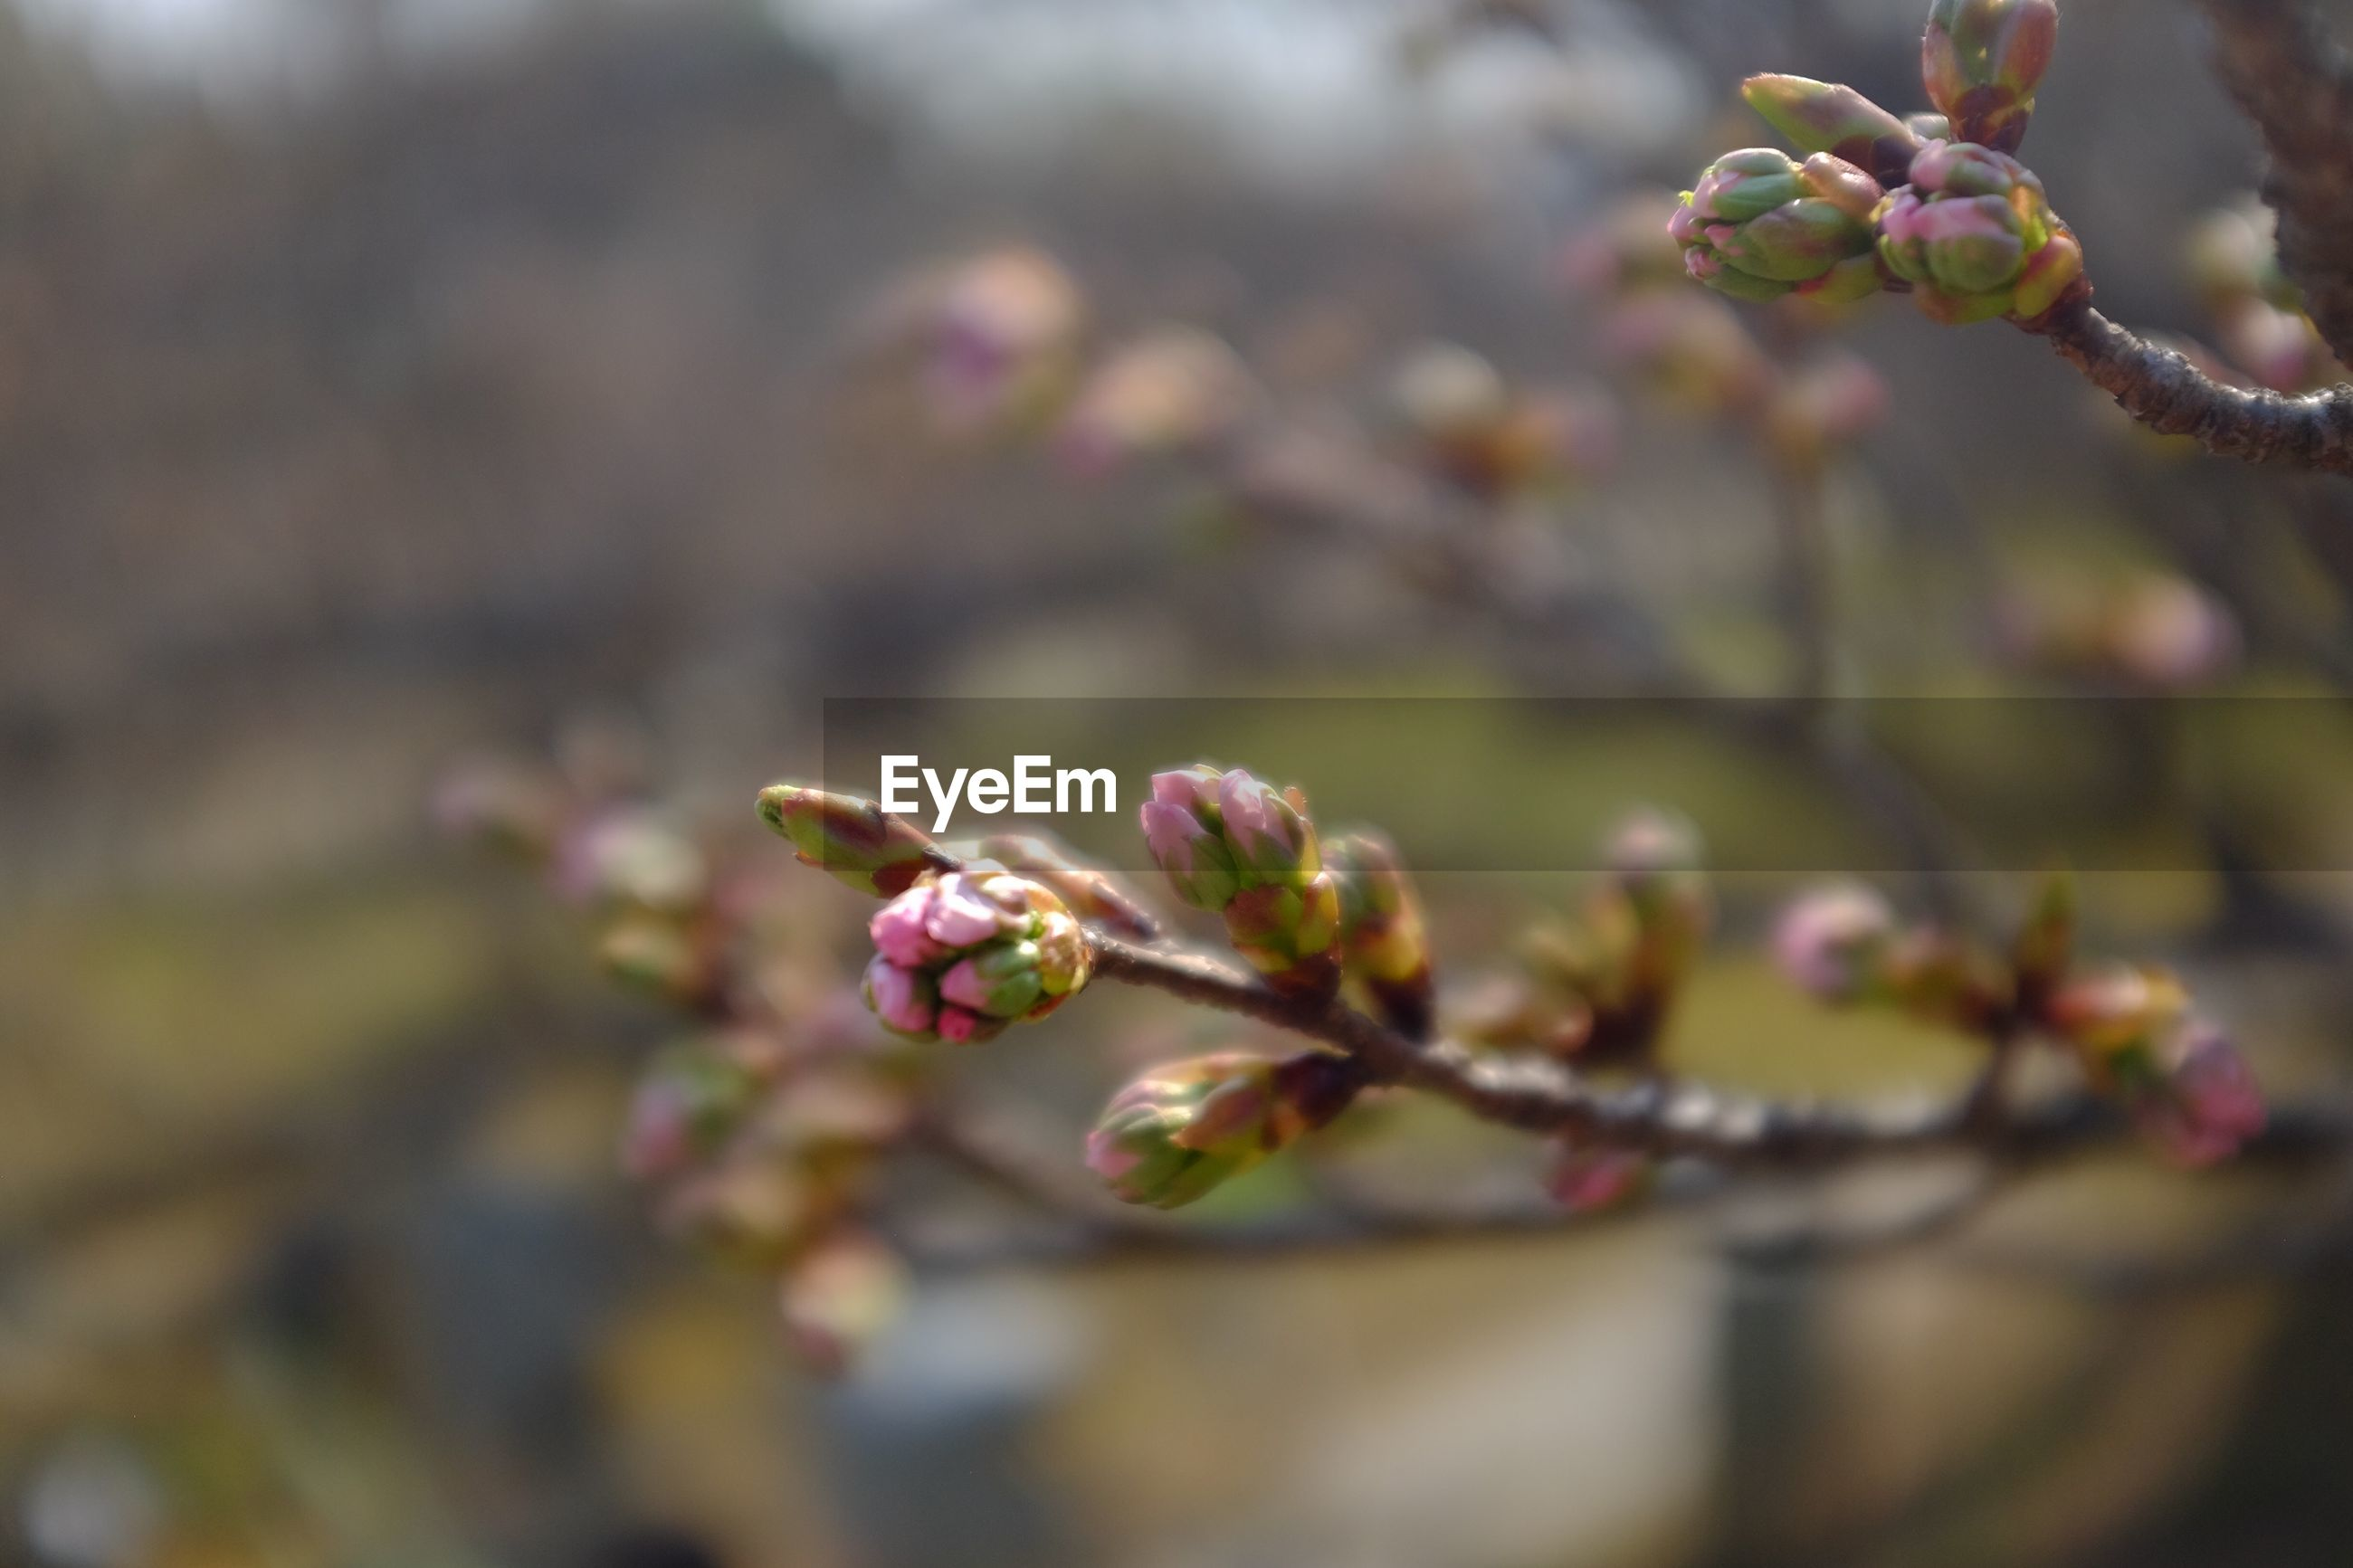 CLOSE-UP OF CHERRY BLOSSOM ON BRANCH